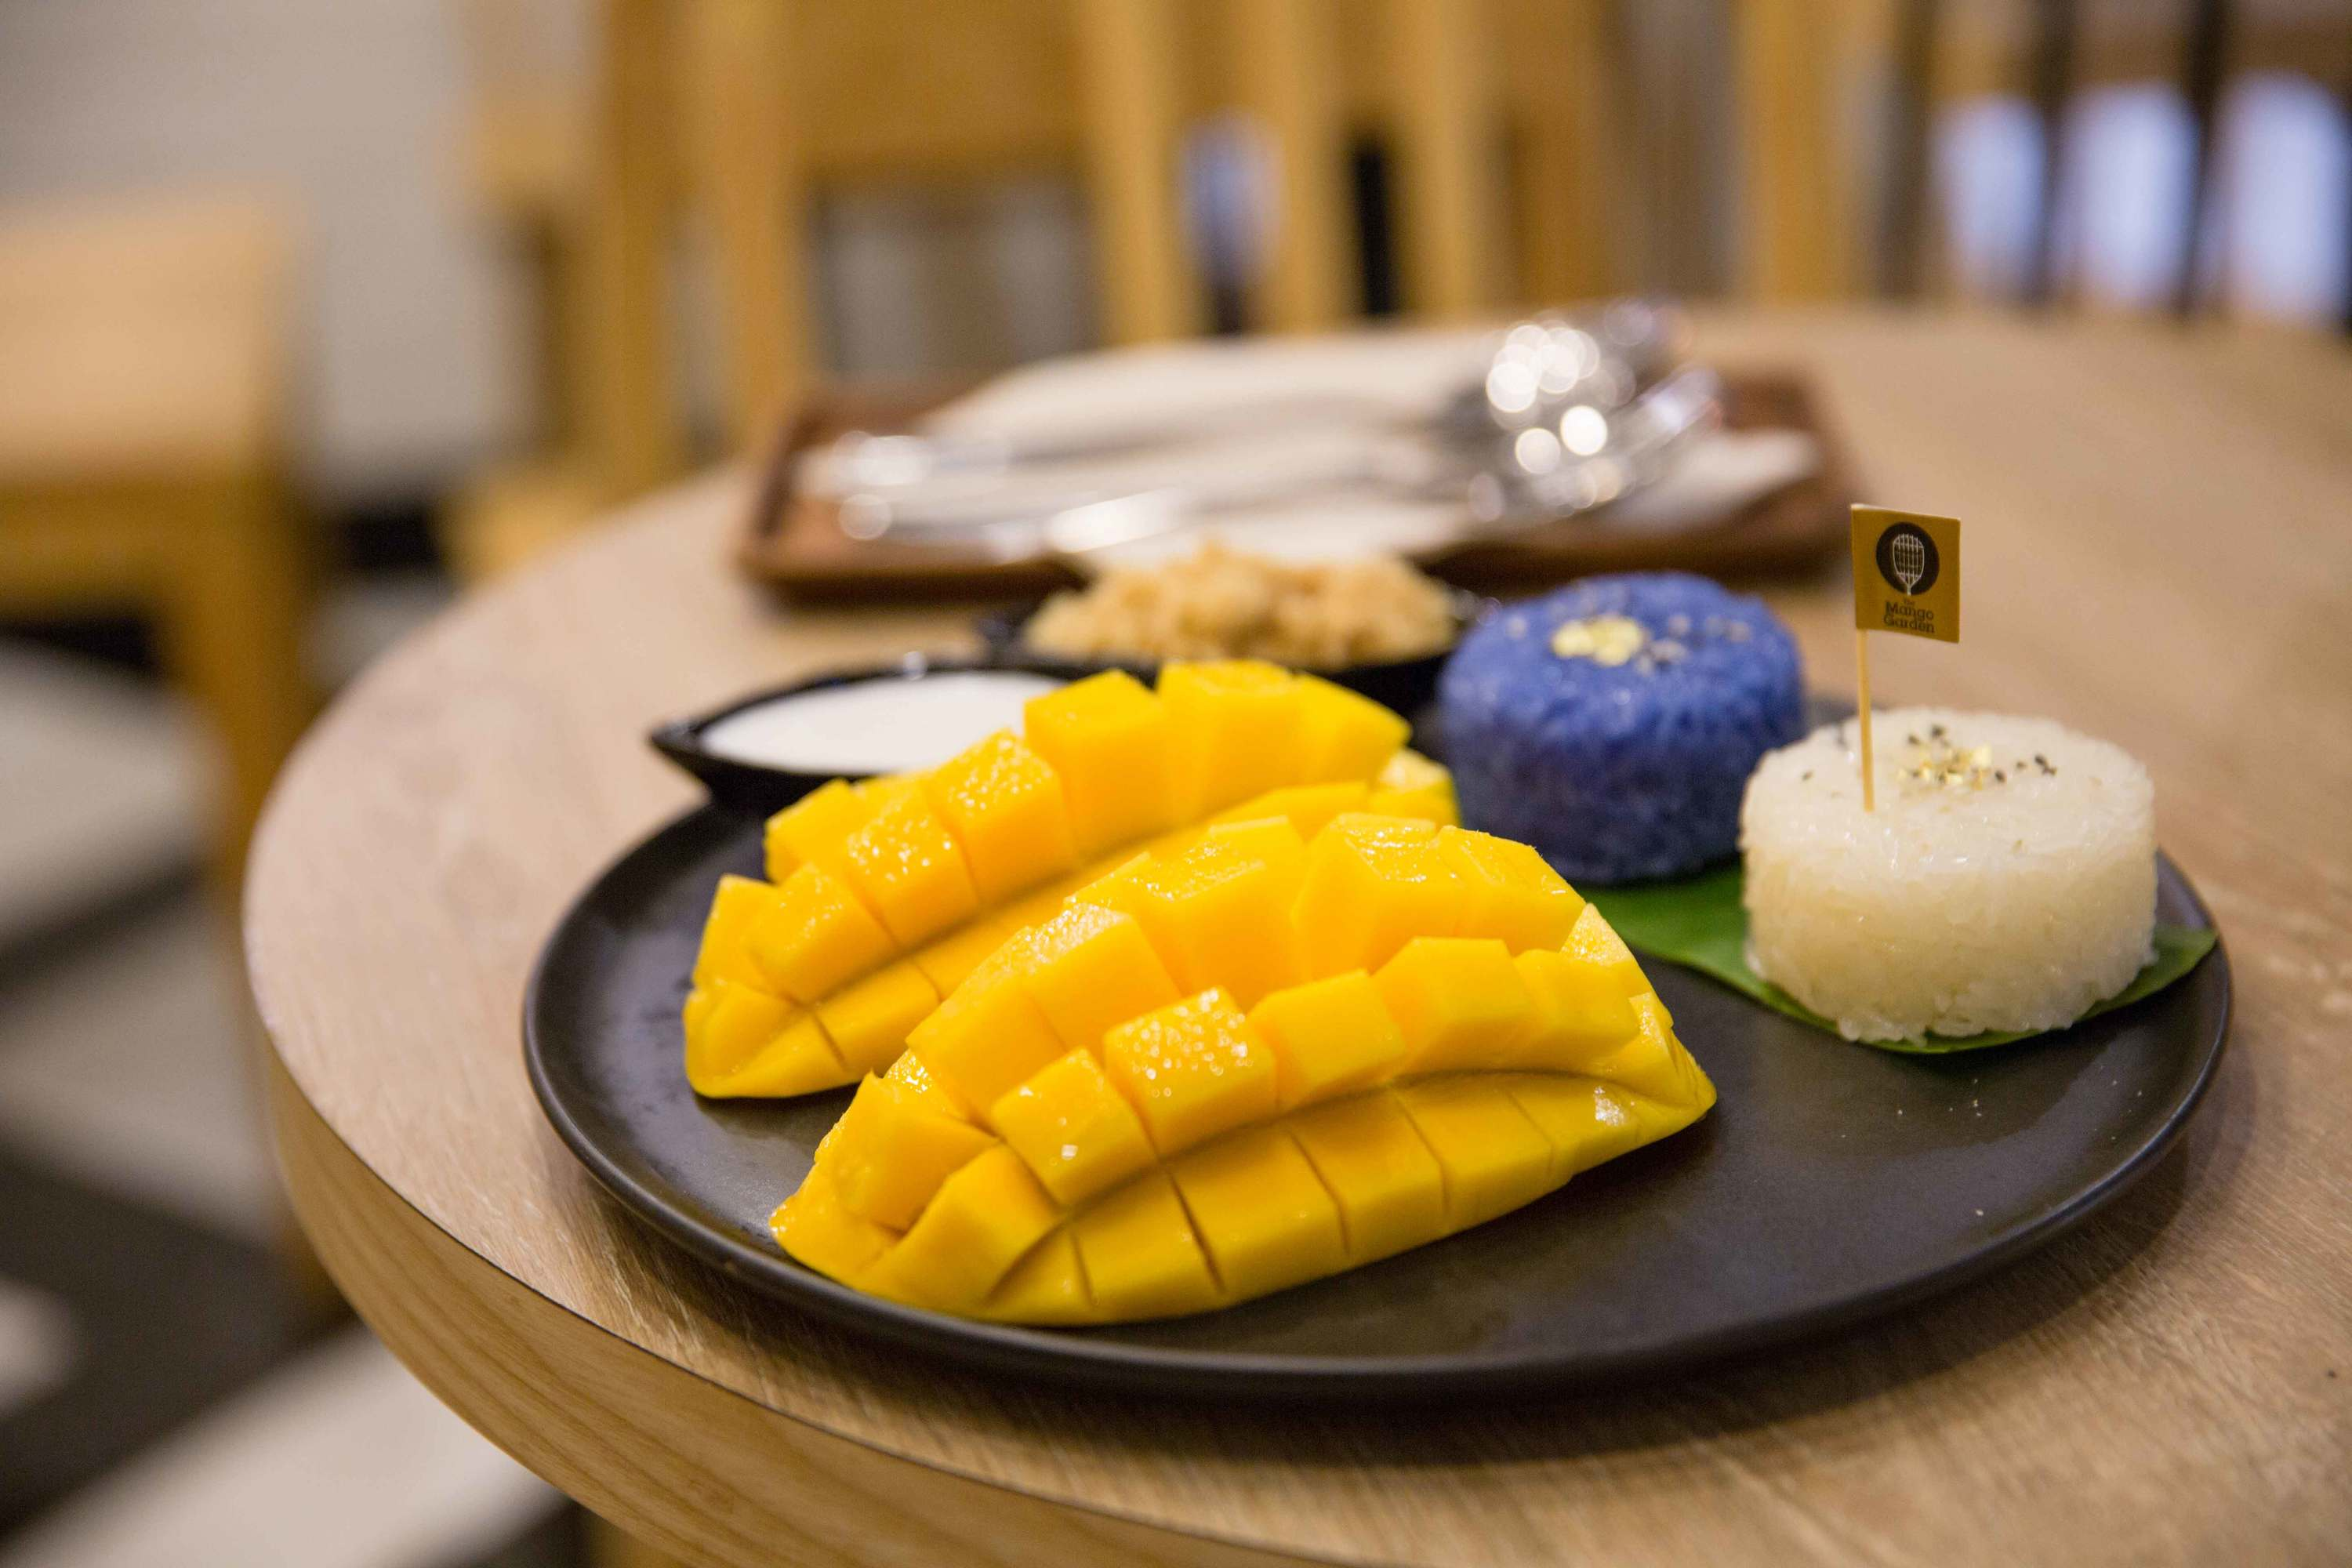 The Mango Garden, the new dessert cafe in Siam Paragon selling Mango Sticky Rice